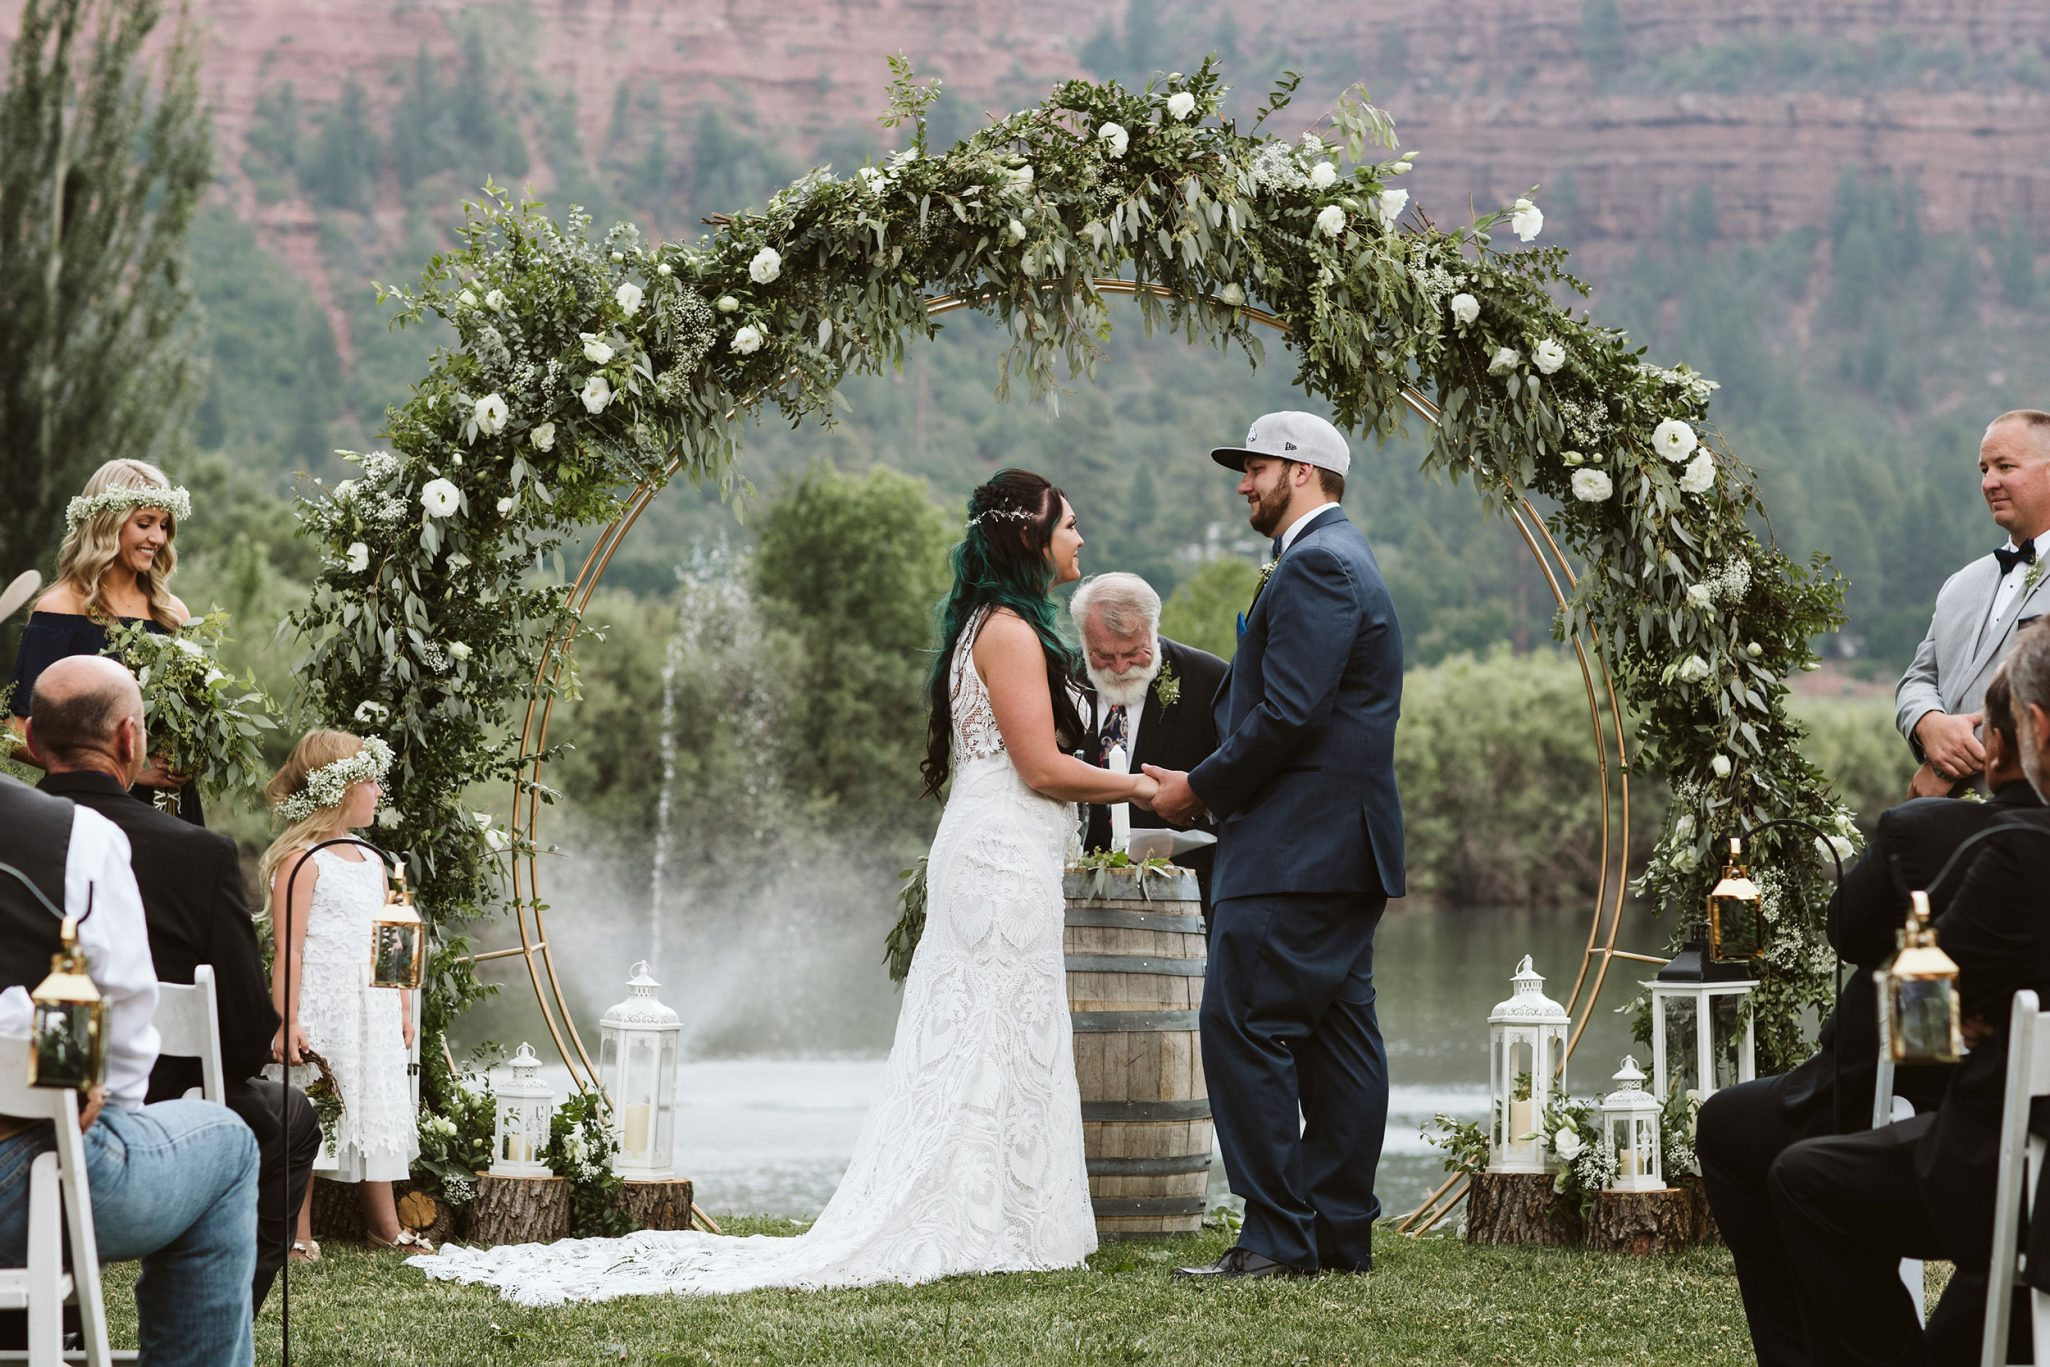 Ceremony at River Bend Ranch, Durango